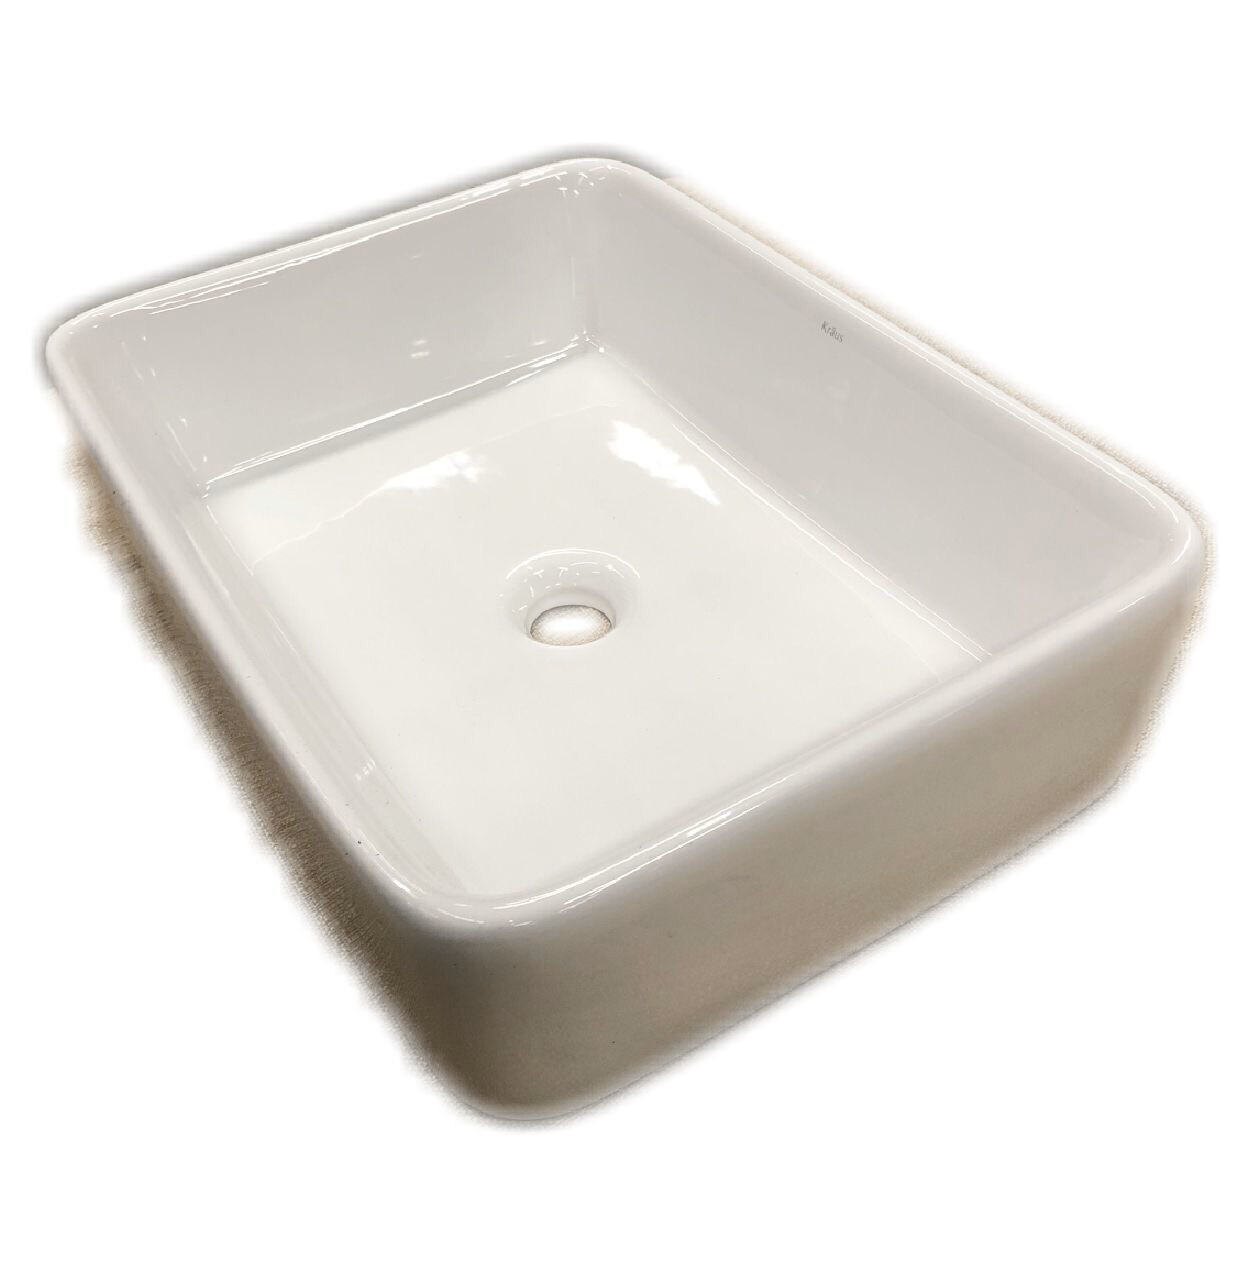 Kraus White Rectangular Ceramic Sink– KCV-121